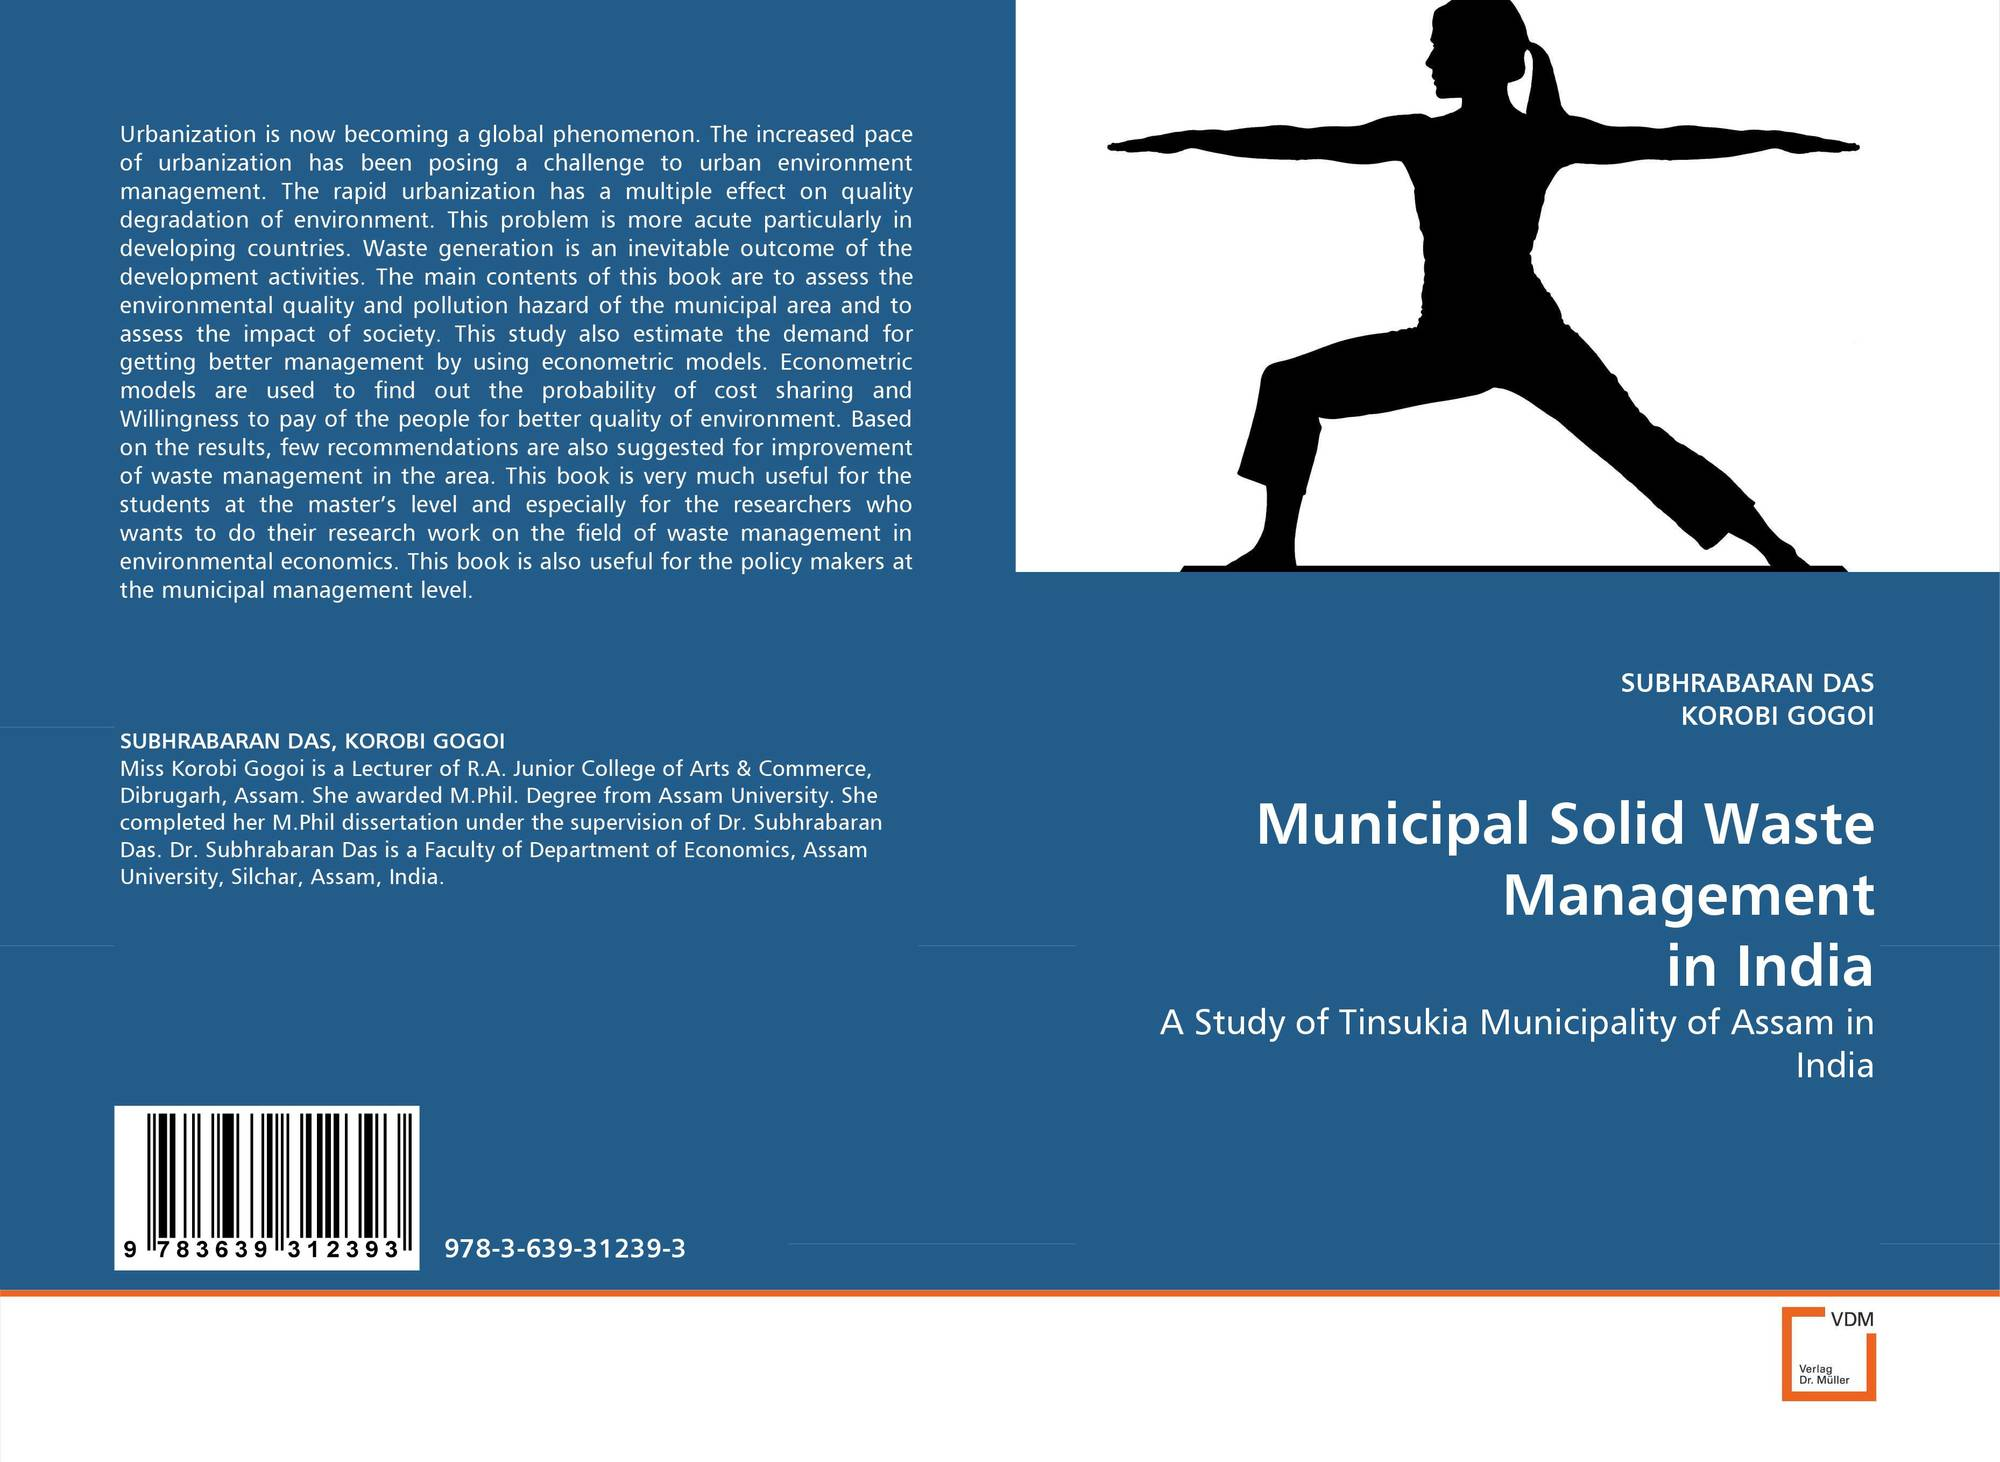 thesis on municipal solid waste management in india Thesis for the fulfilment of the it is particularly necessary for the municipal solid waste (msw) management sector municipal solid waste management in armenia.